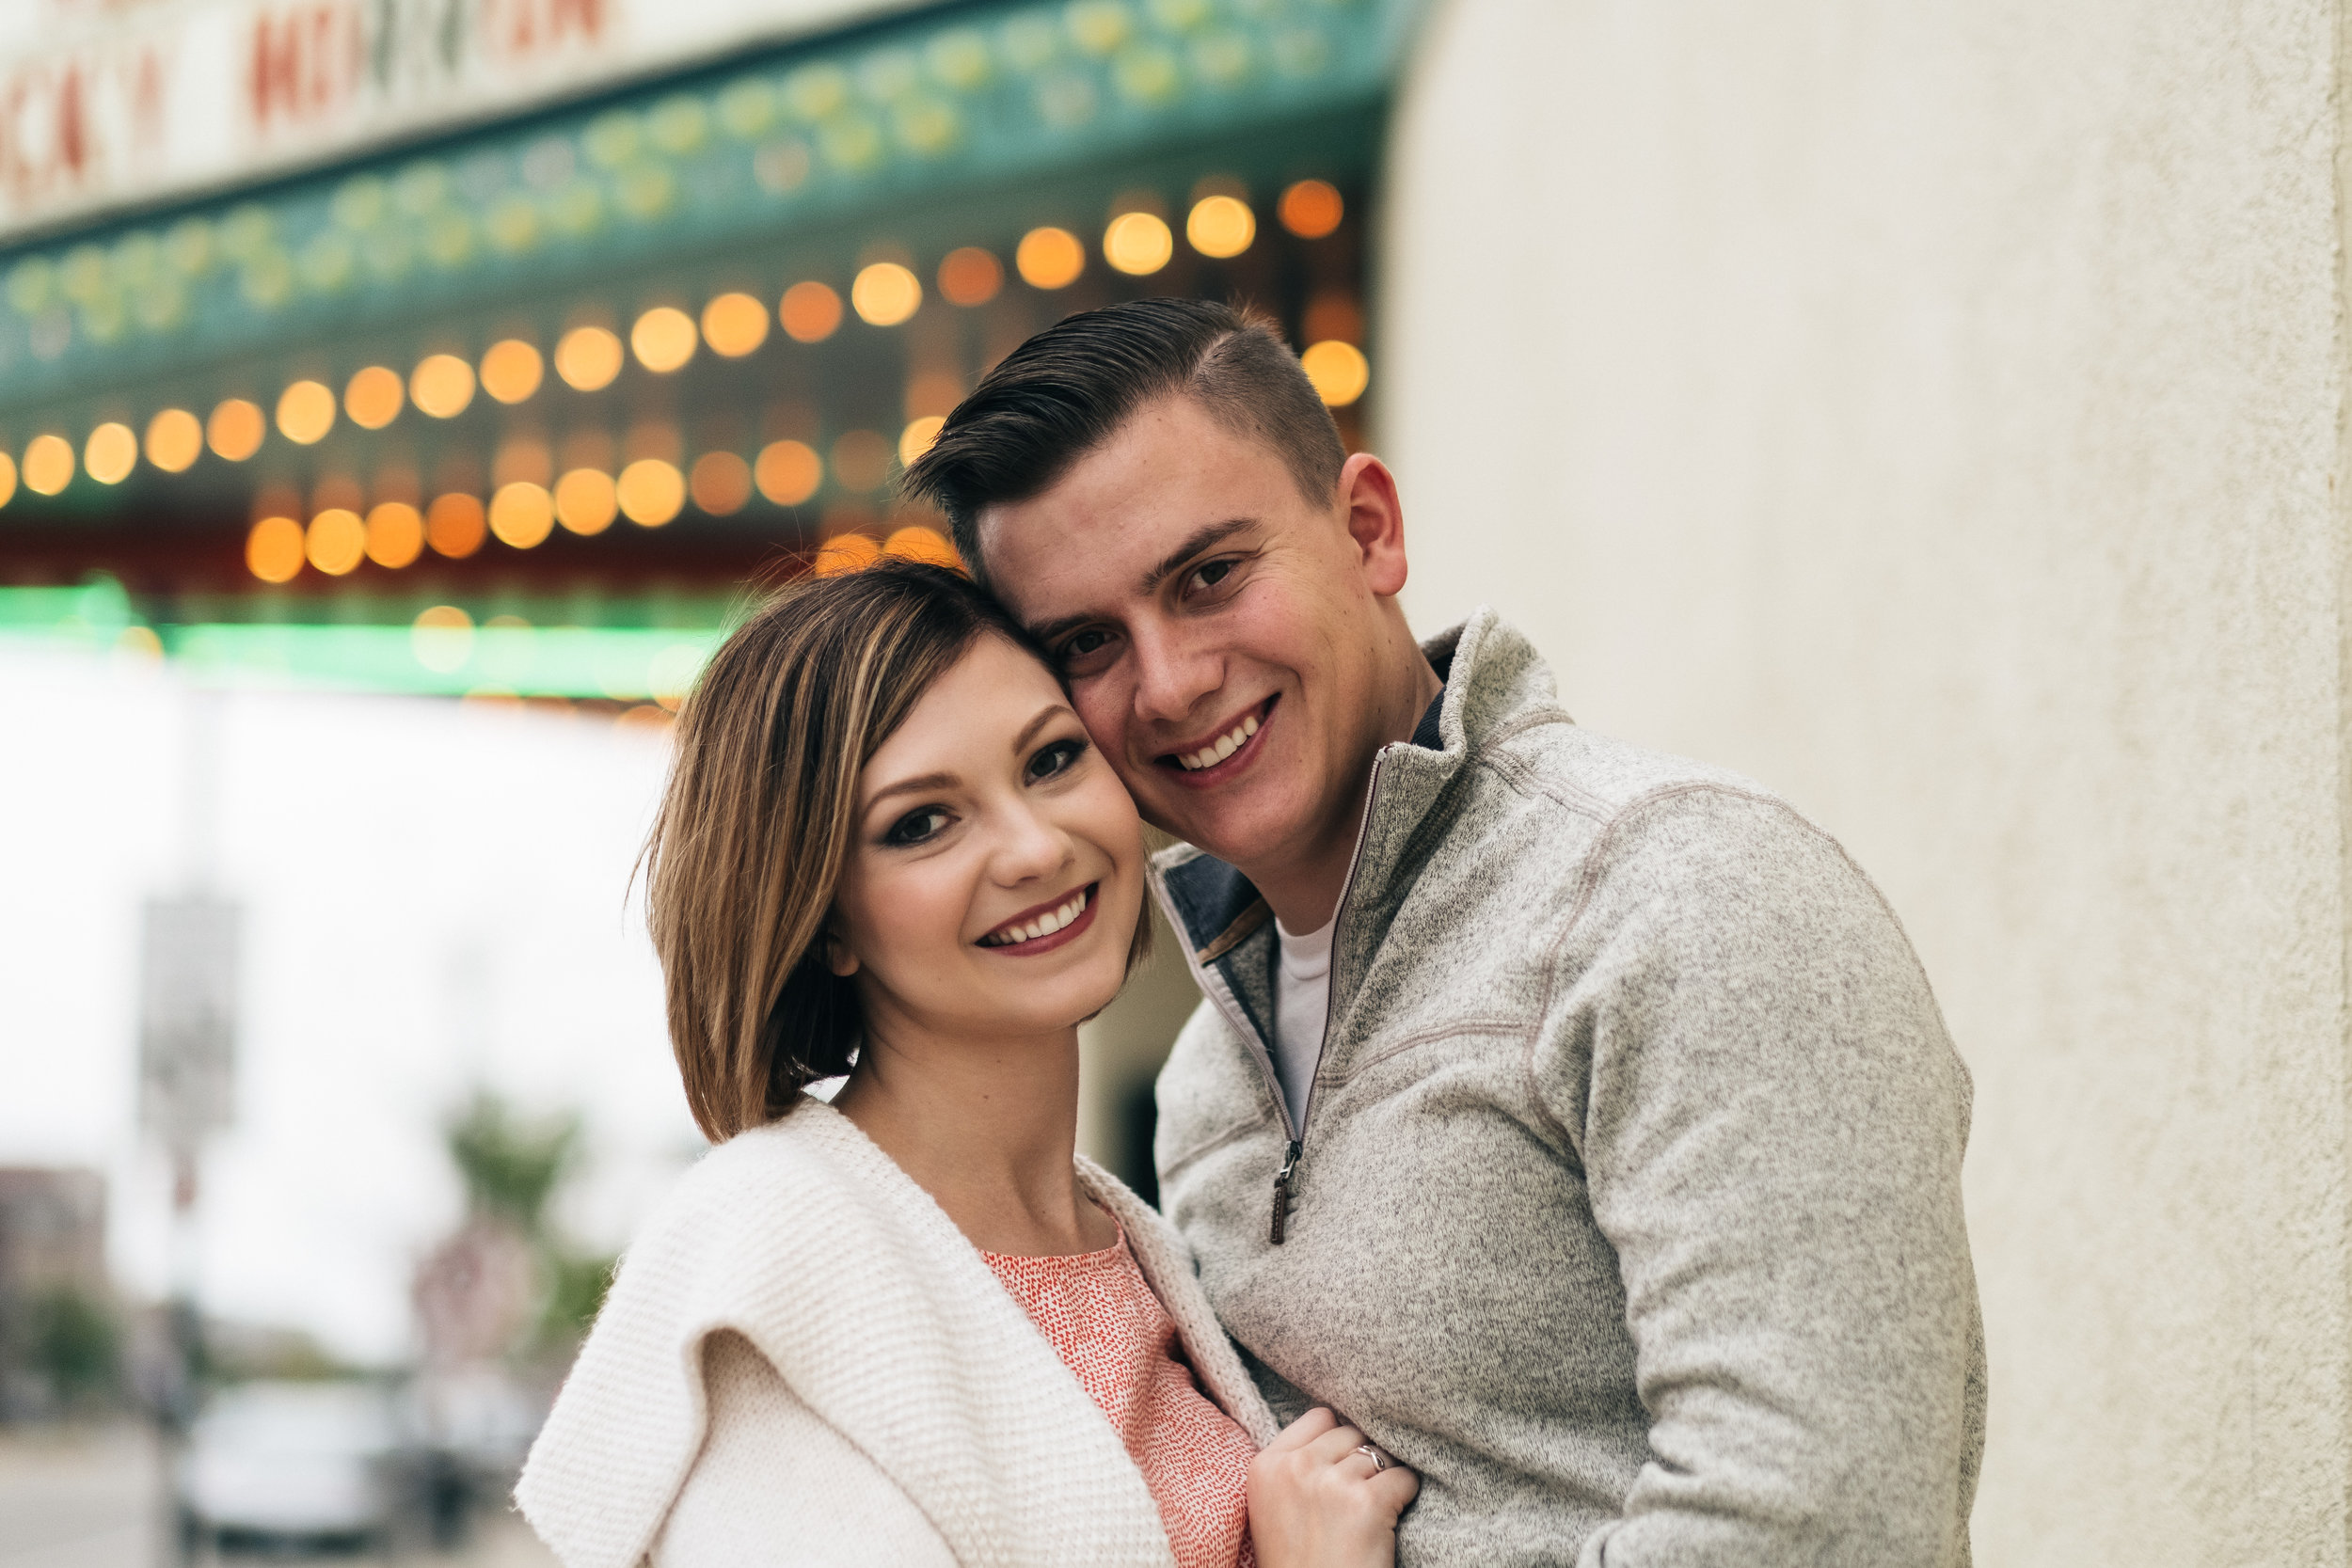 Smiling engagement picture in front of urban movie theater in Royal Oaks, Michigan.